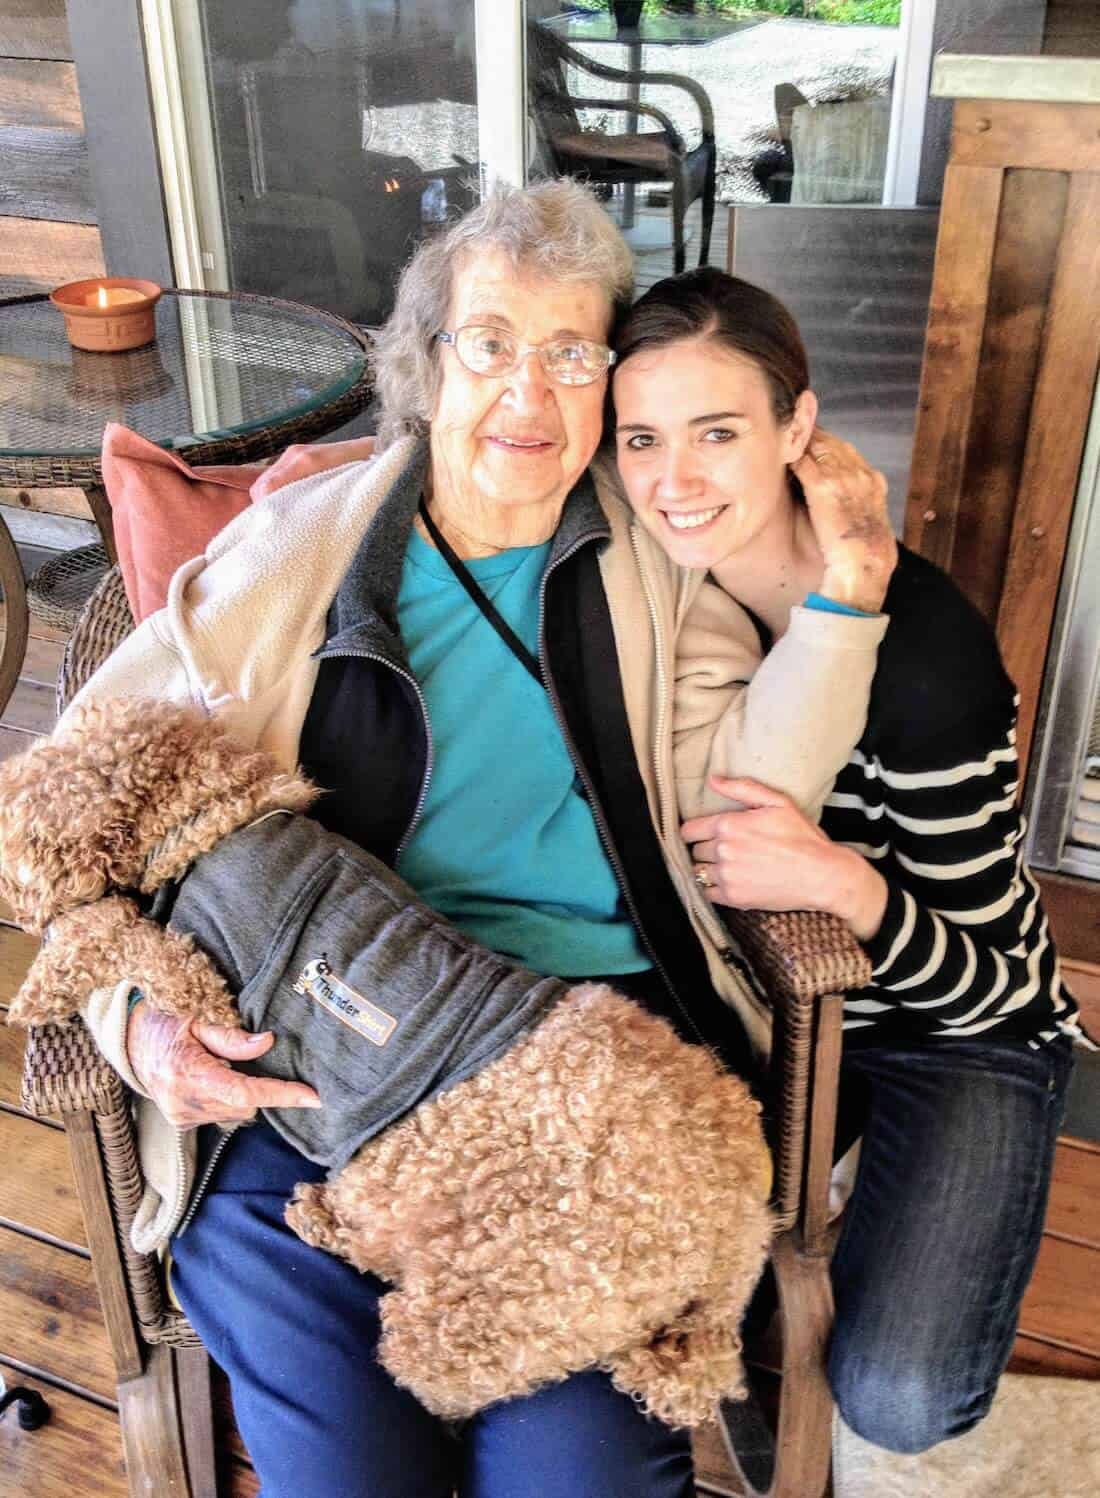 3 Life Lessons Straight from Grandma's Heart | #grandma #grandmagifts #grandparents #family #newmom #sponsored